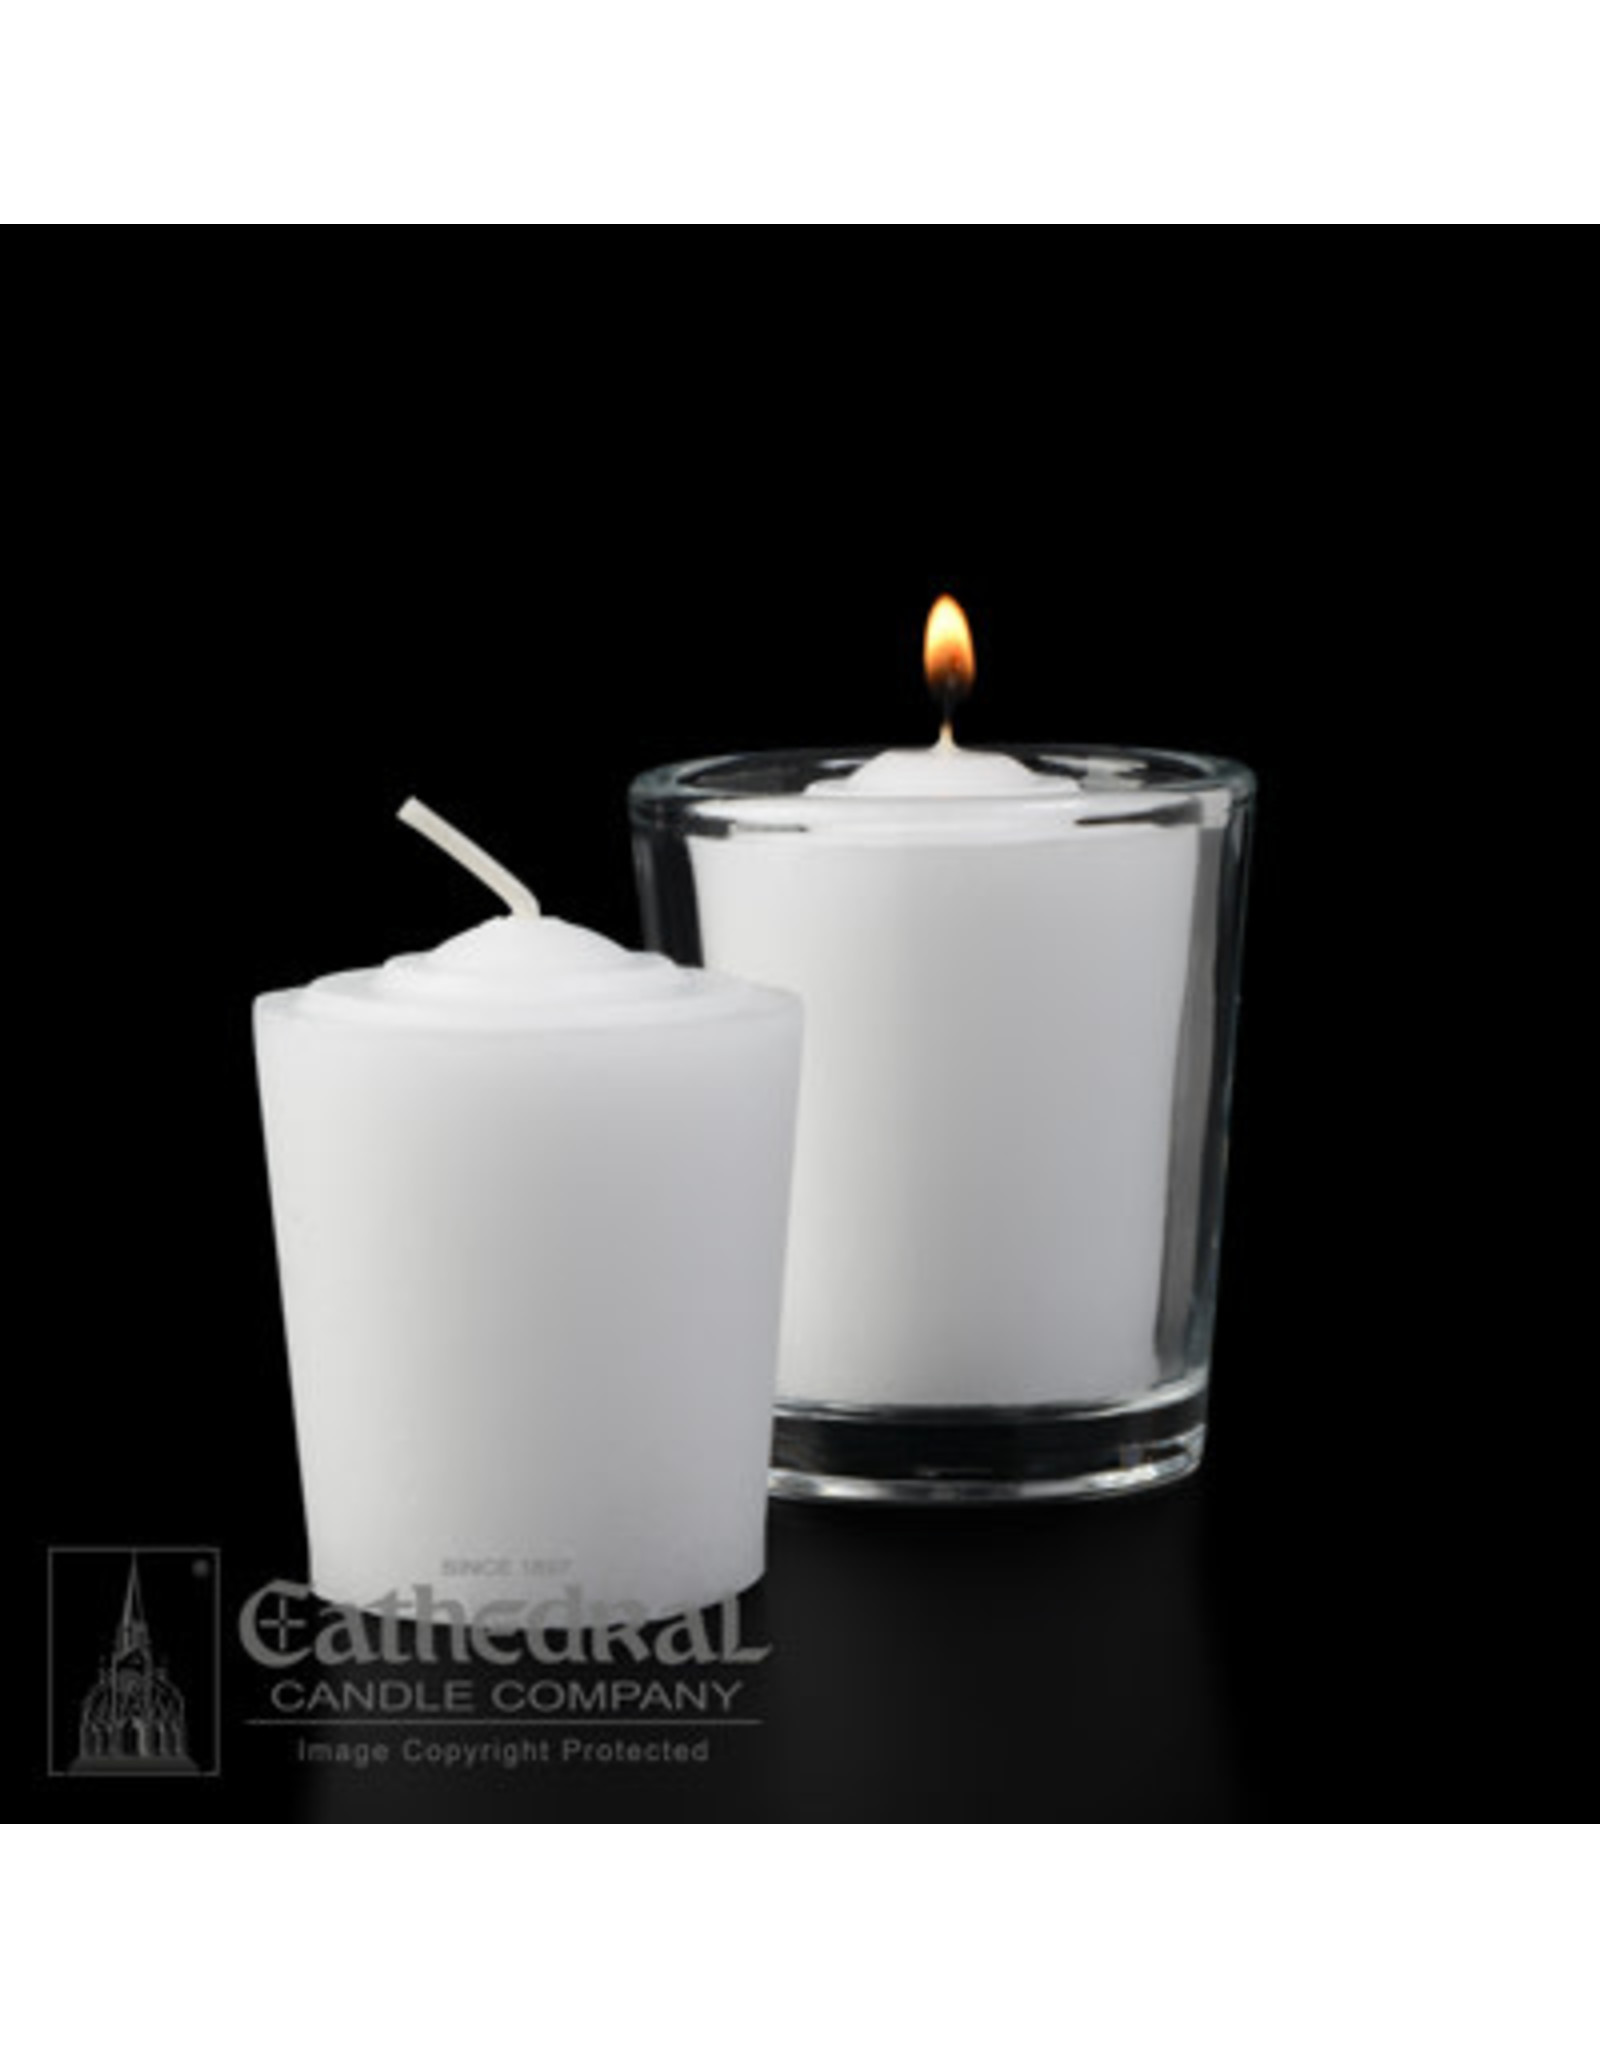 15-Hour Tapered Votive Candles (1 Gross)